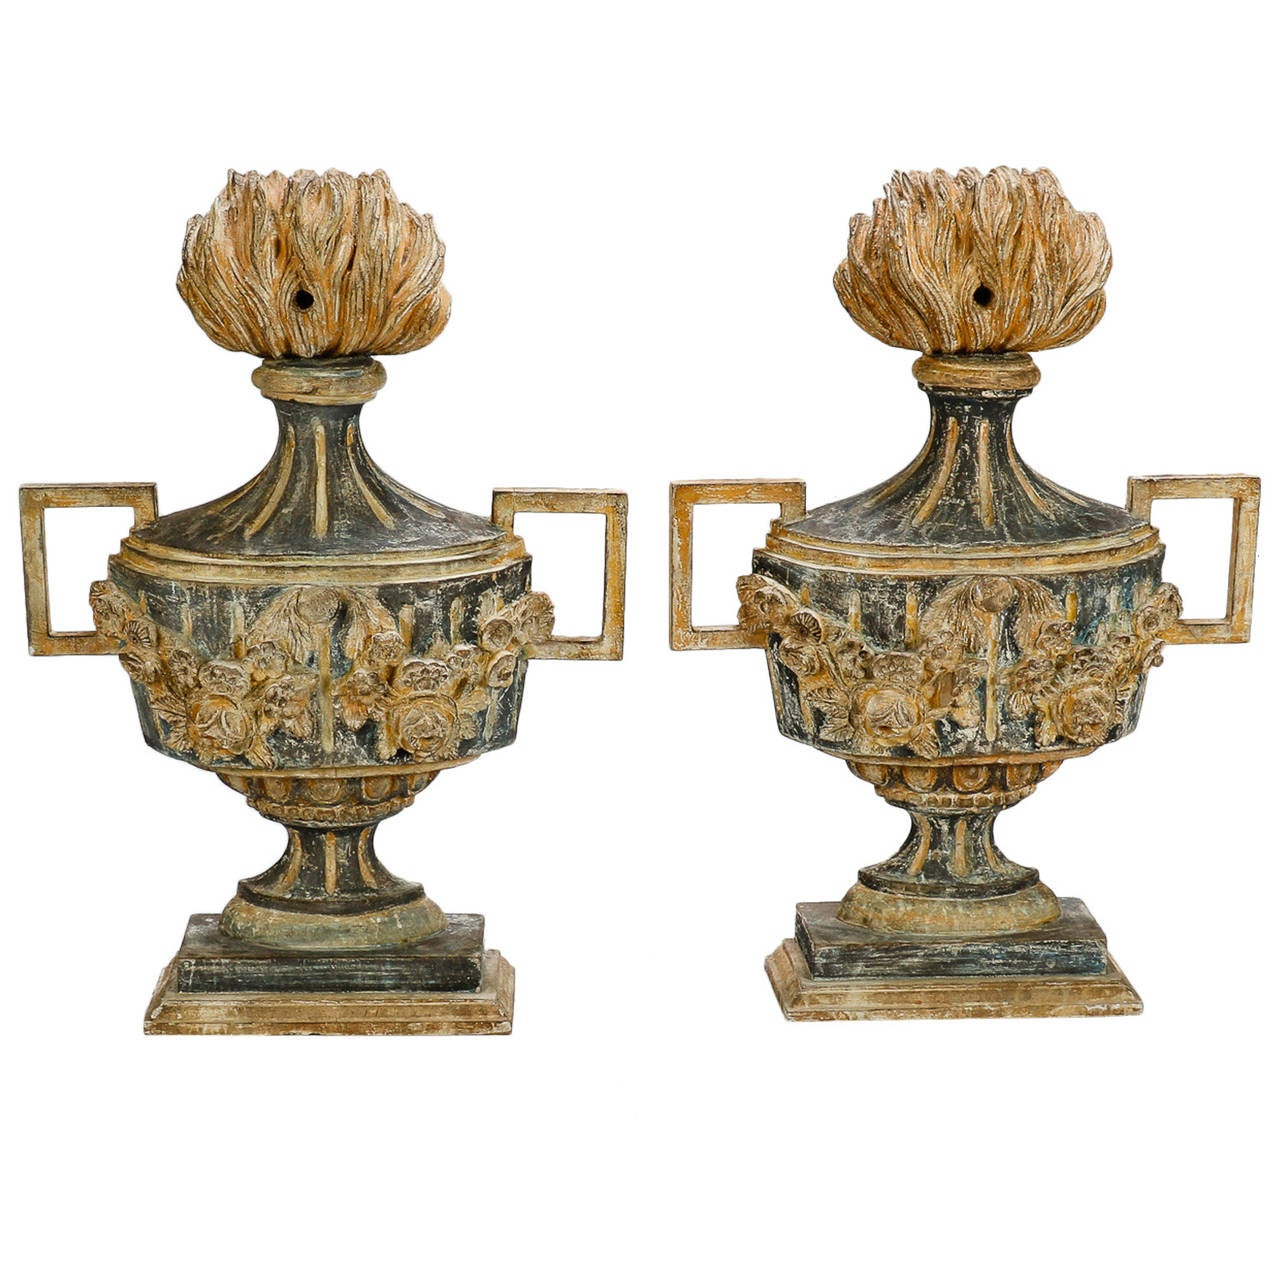 pair of 19th century italian carved wood decorative urns 1 - Decorative Urns